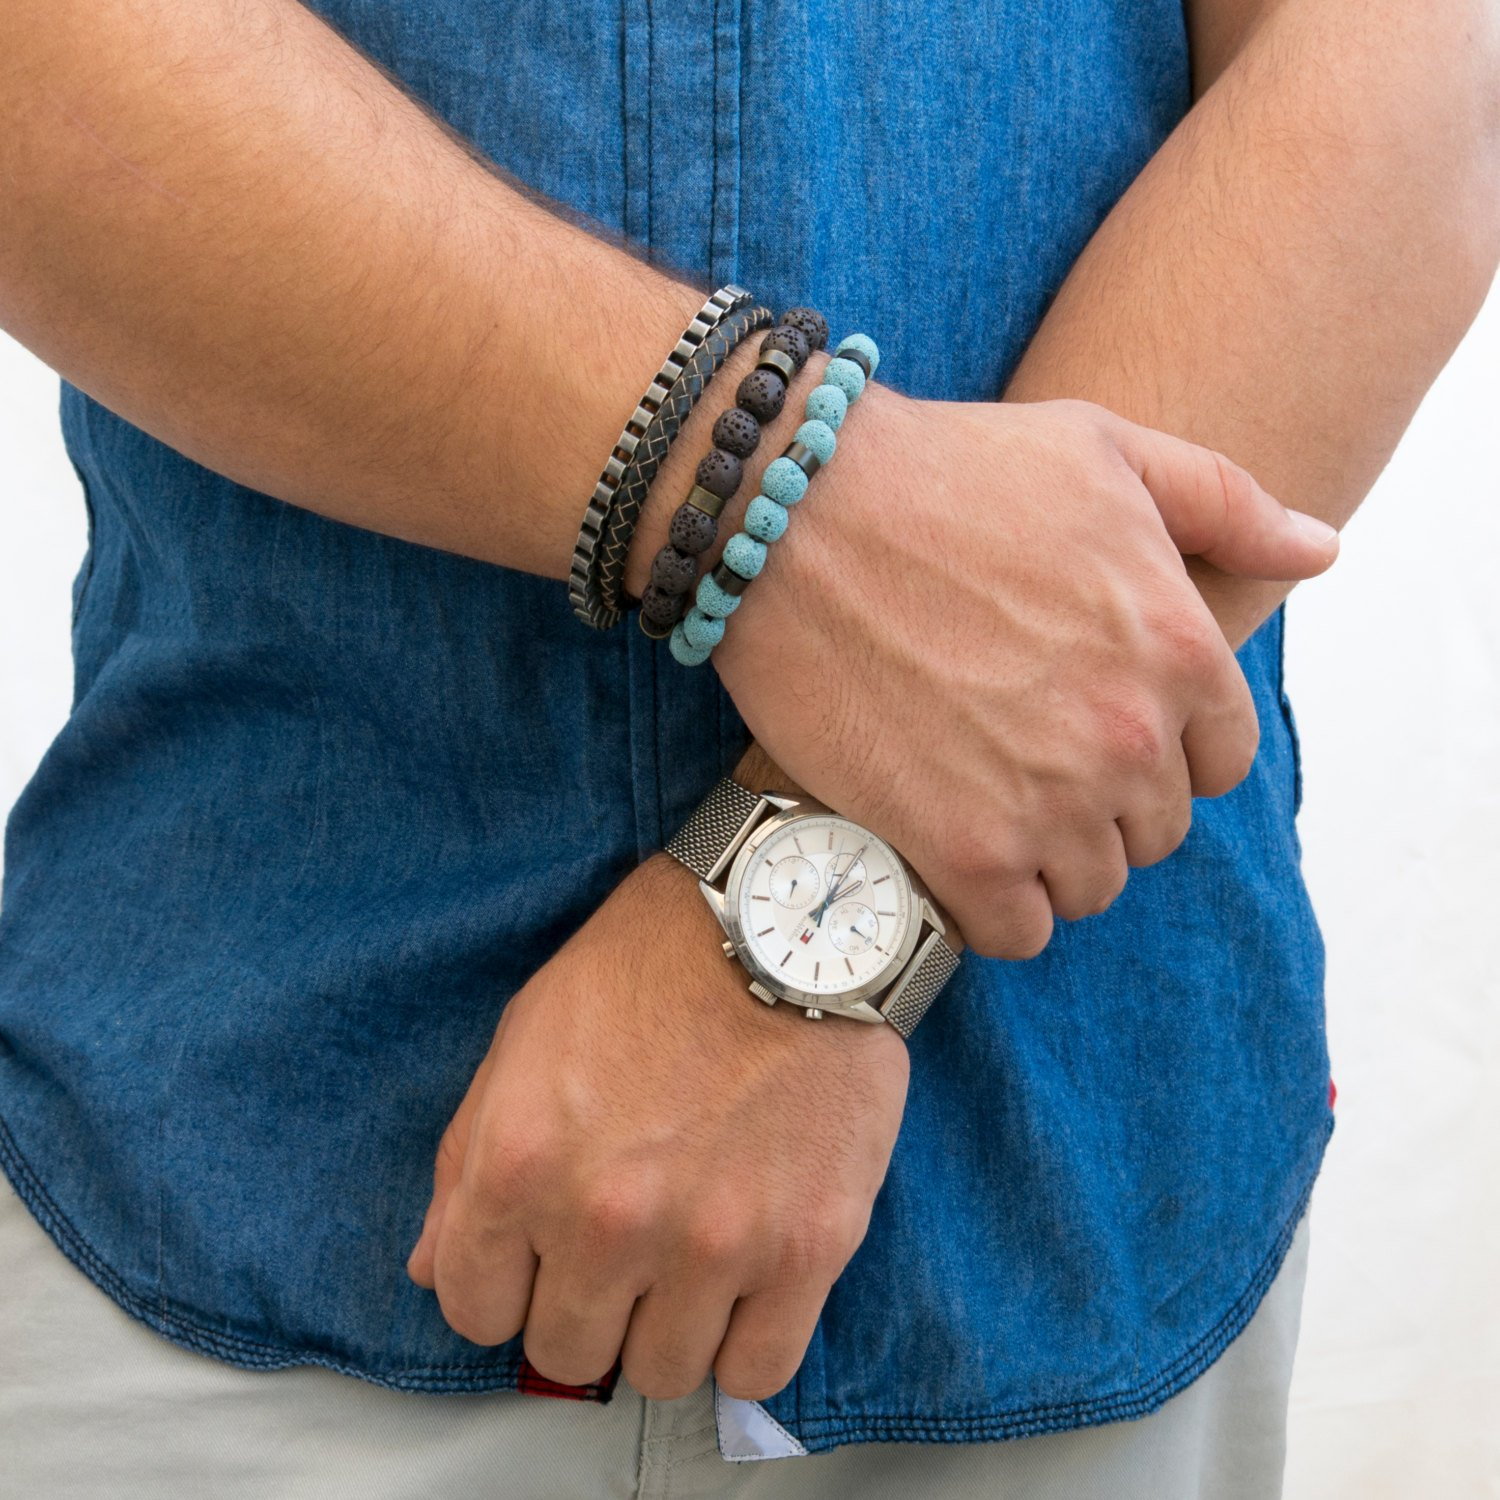 Men's Bracelet Set - Set of 4 Bracelets For Men - Men's Jewelry - Men's Beaded Bracelet4